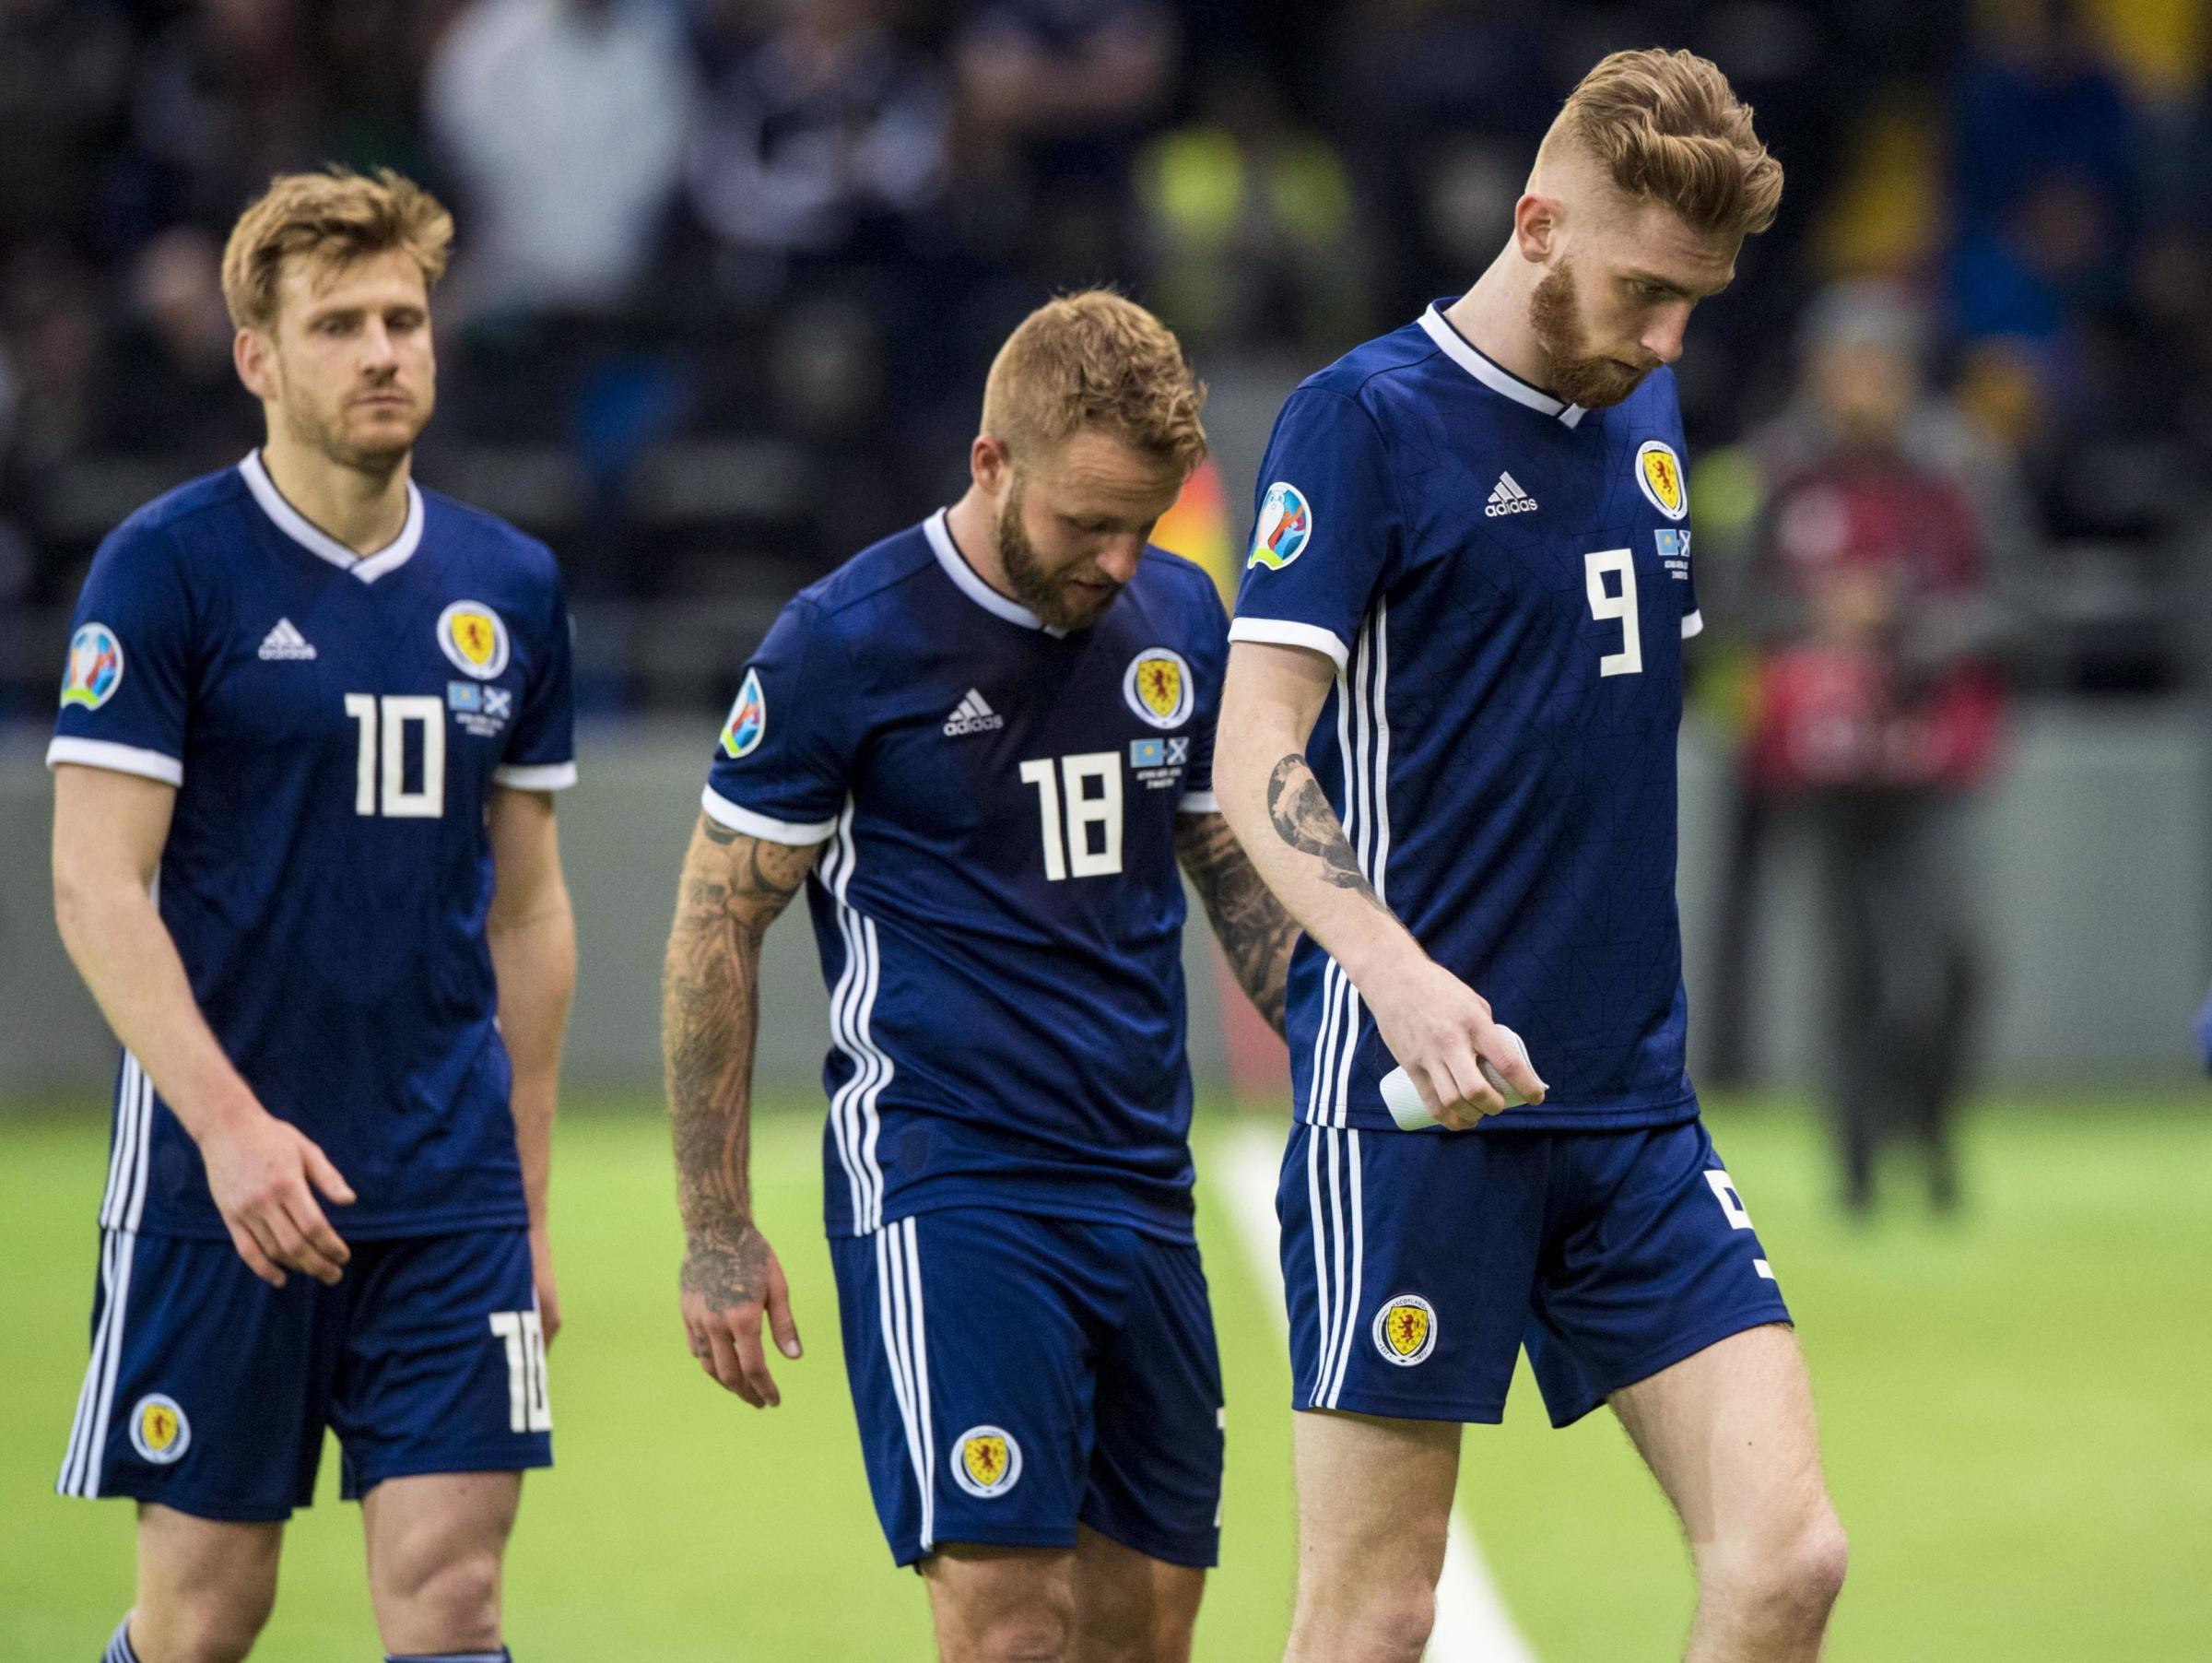 There was nowhere to hide for the Scotland team